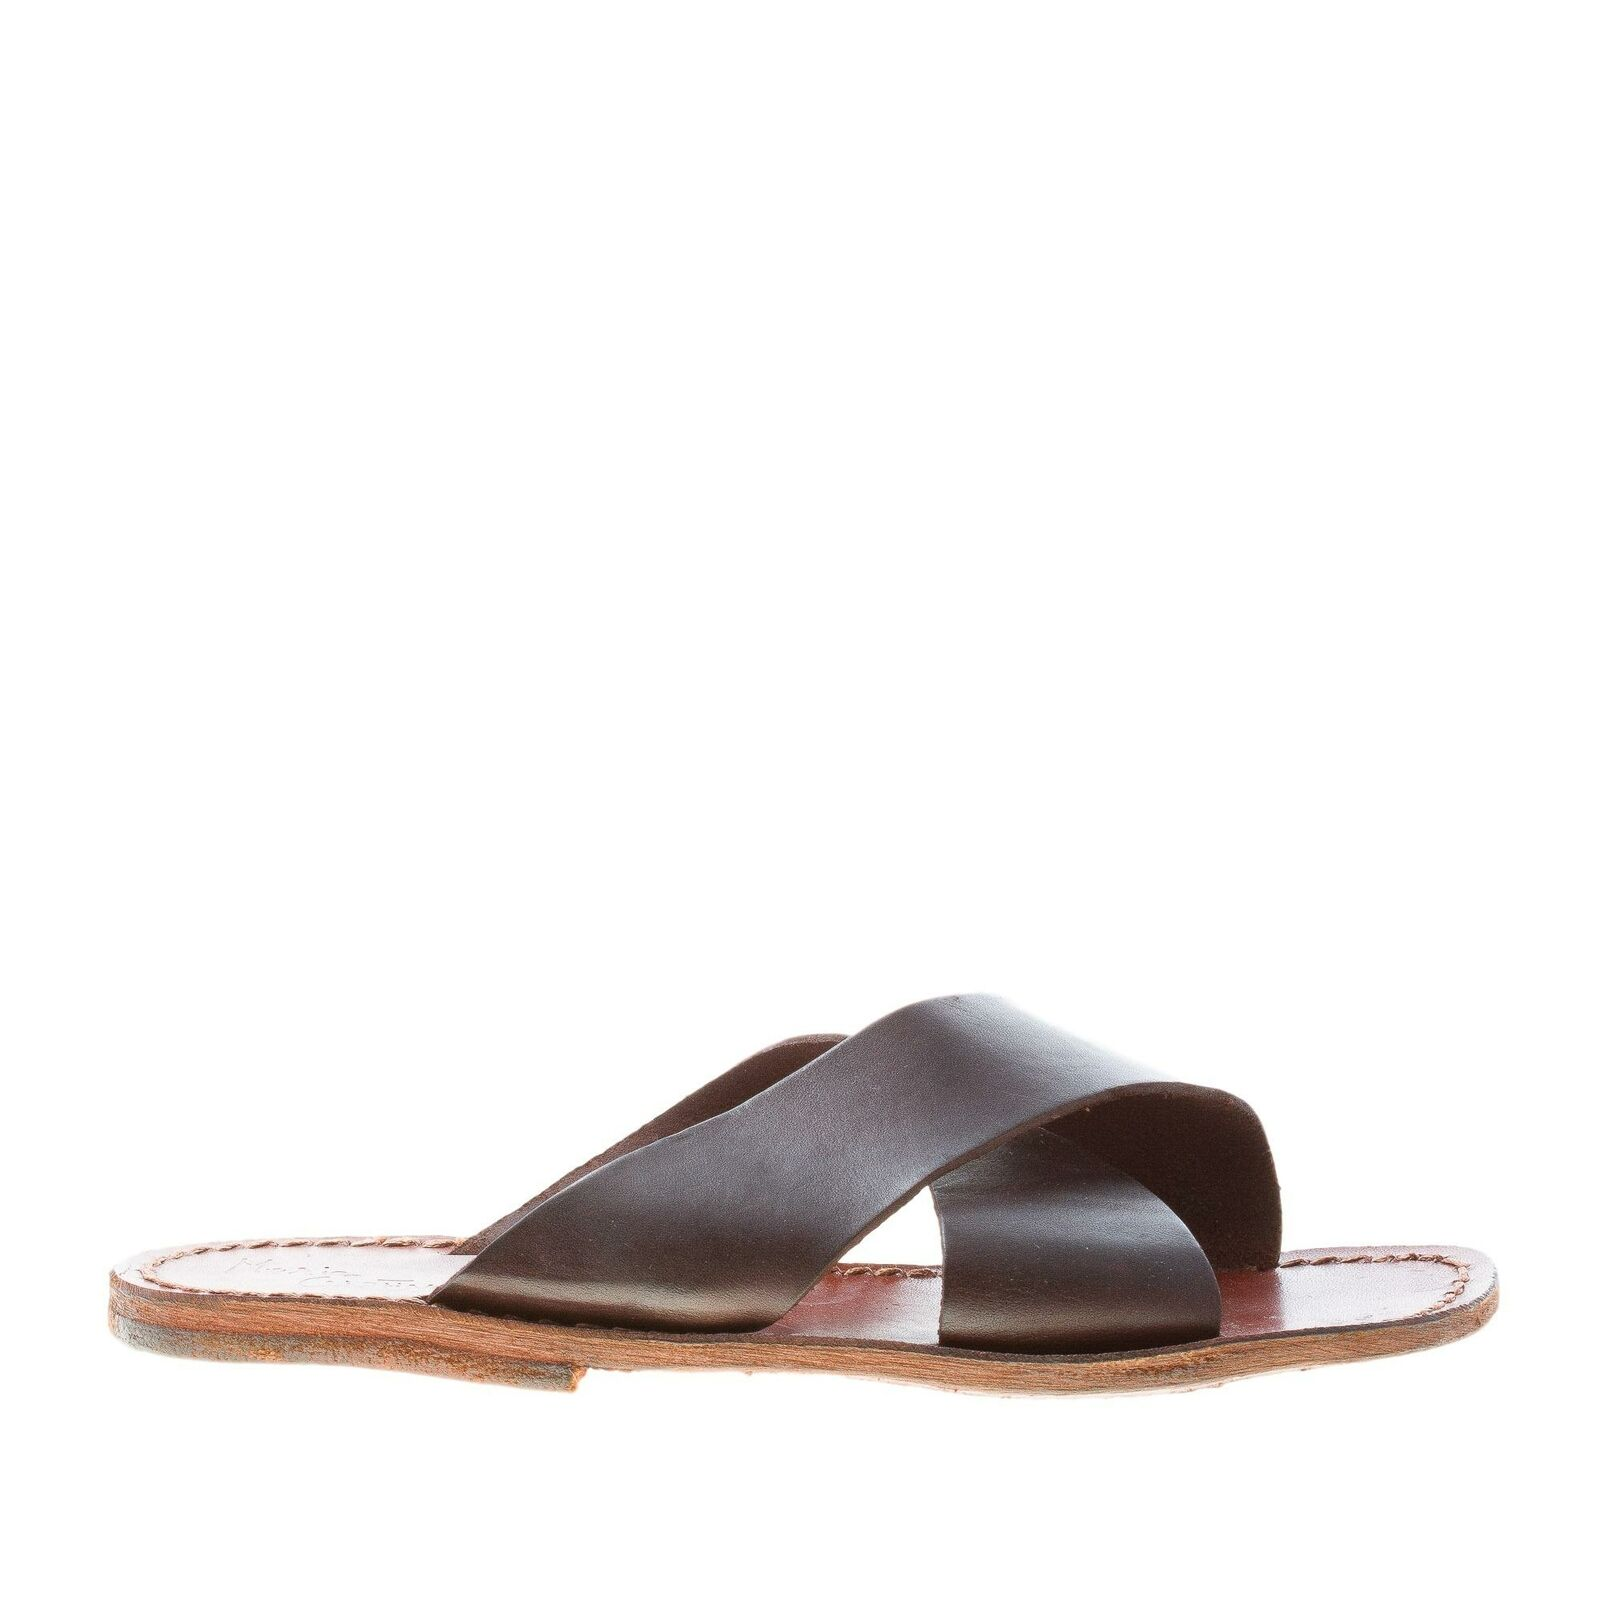 MARIA CRISTINA men shoes Dark brown leather slide crossed sandal made in